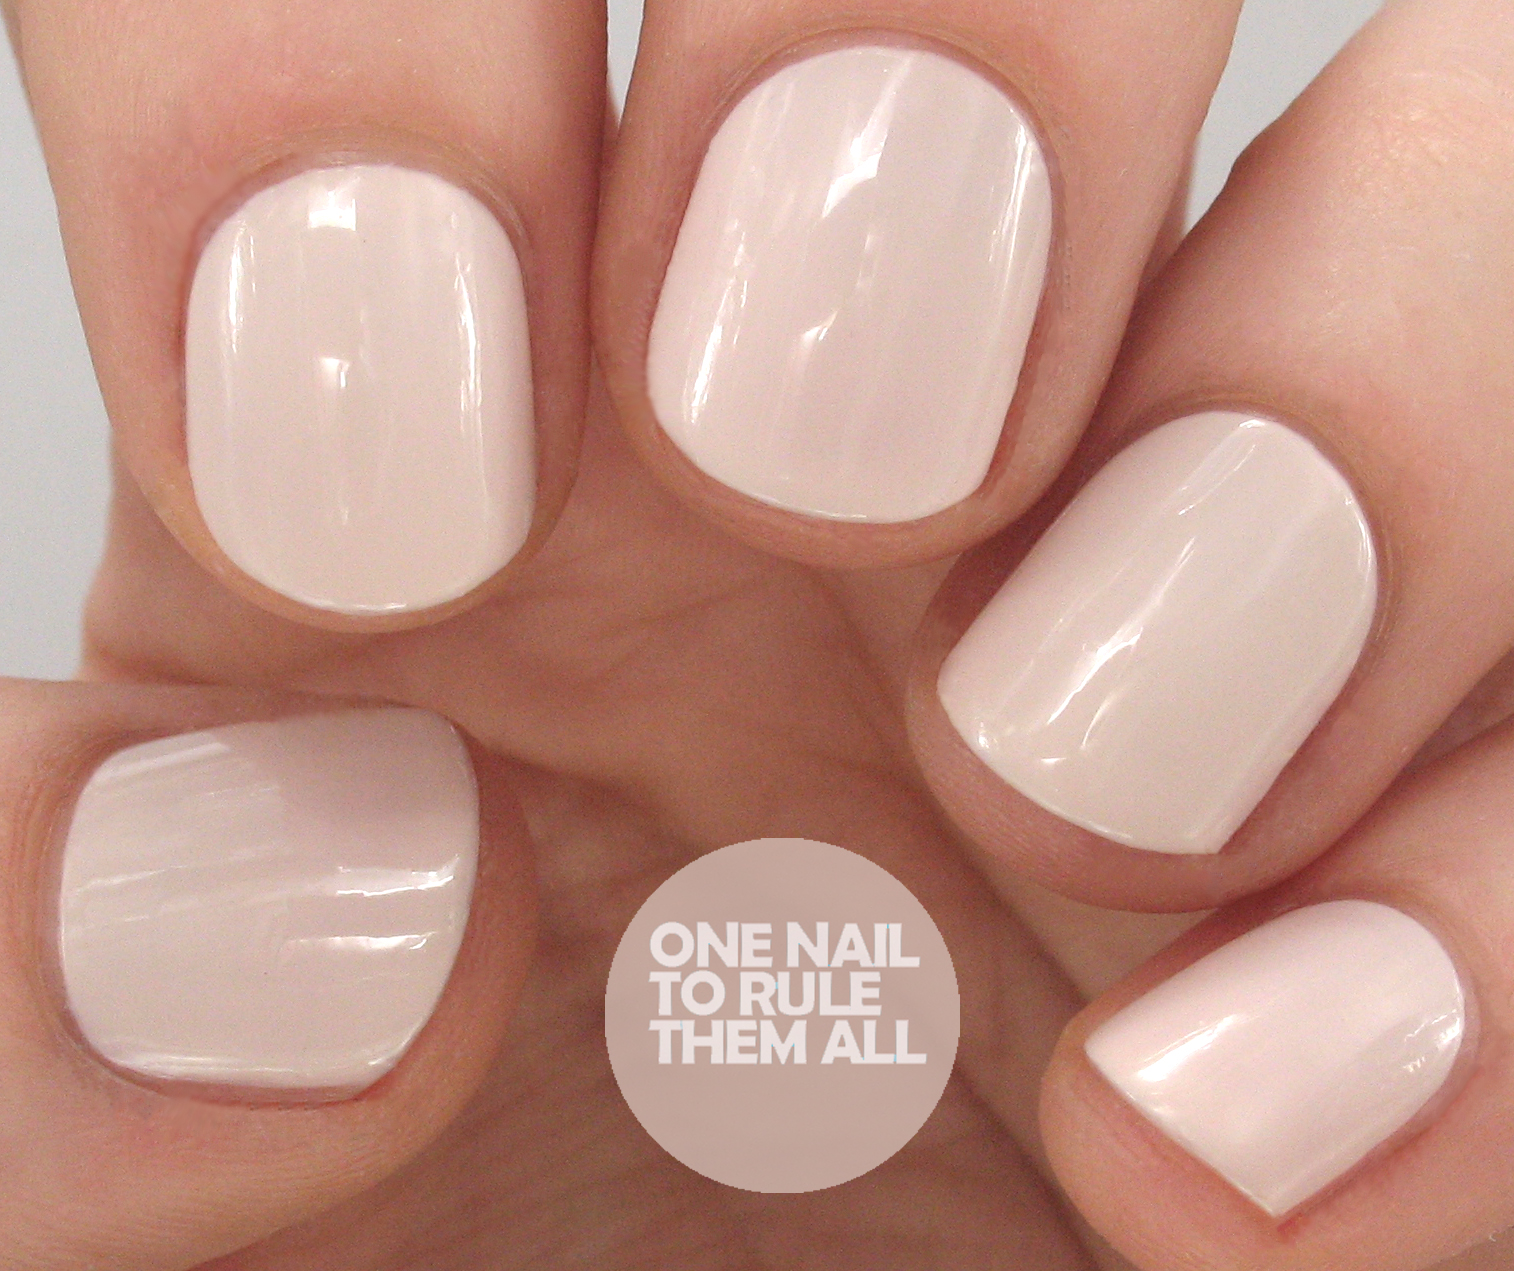 One Nail To Rule Them All Vvb Victoria Beckham Nails Inc